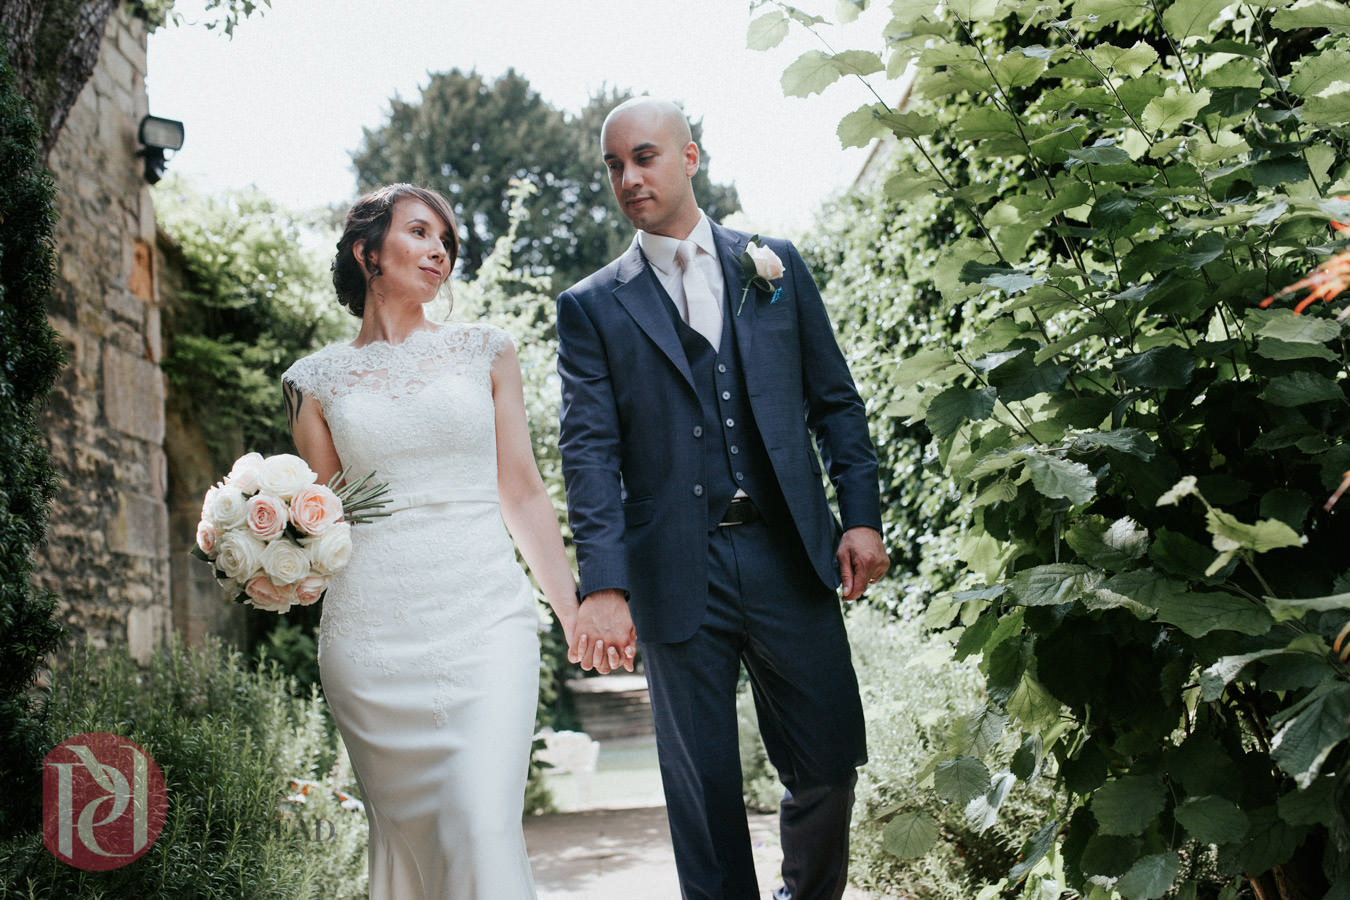 Peter_Redhead_Photography_Natural_Wedding_Photogrpaher-002